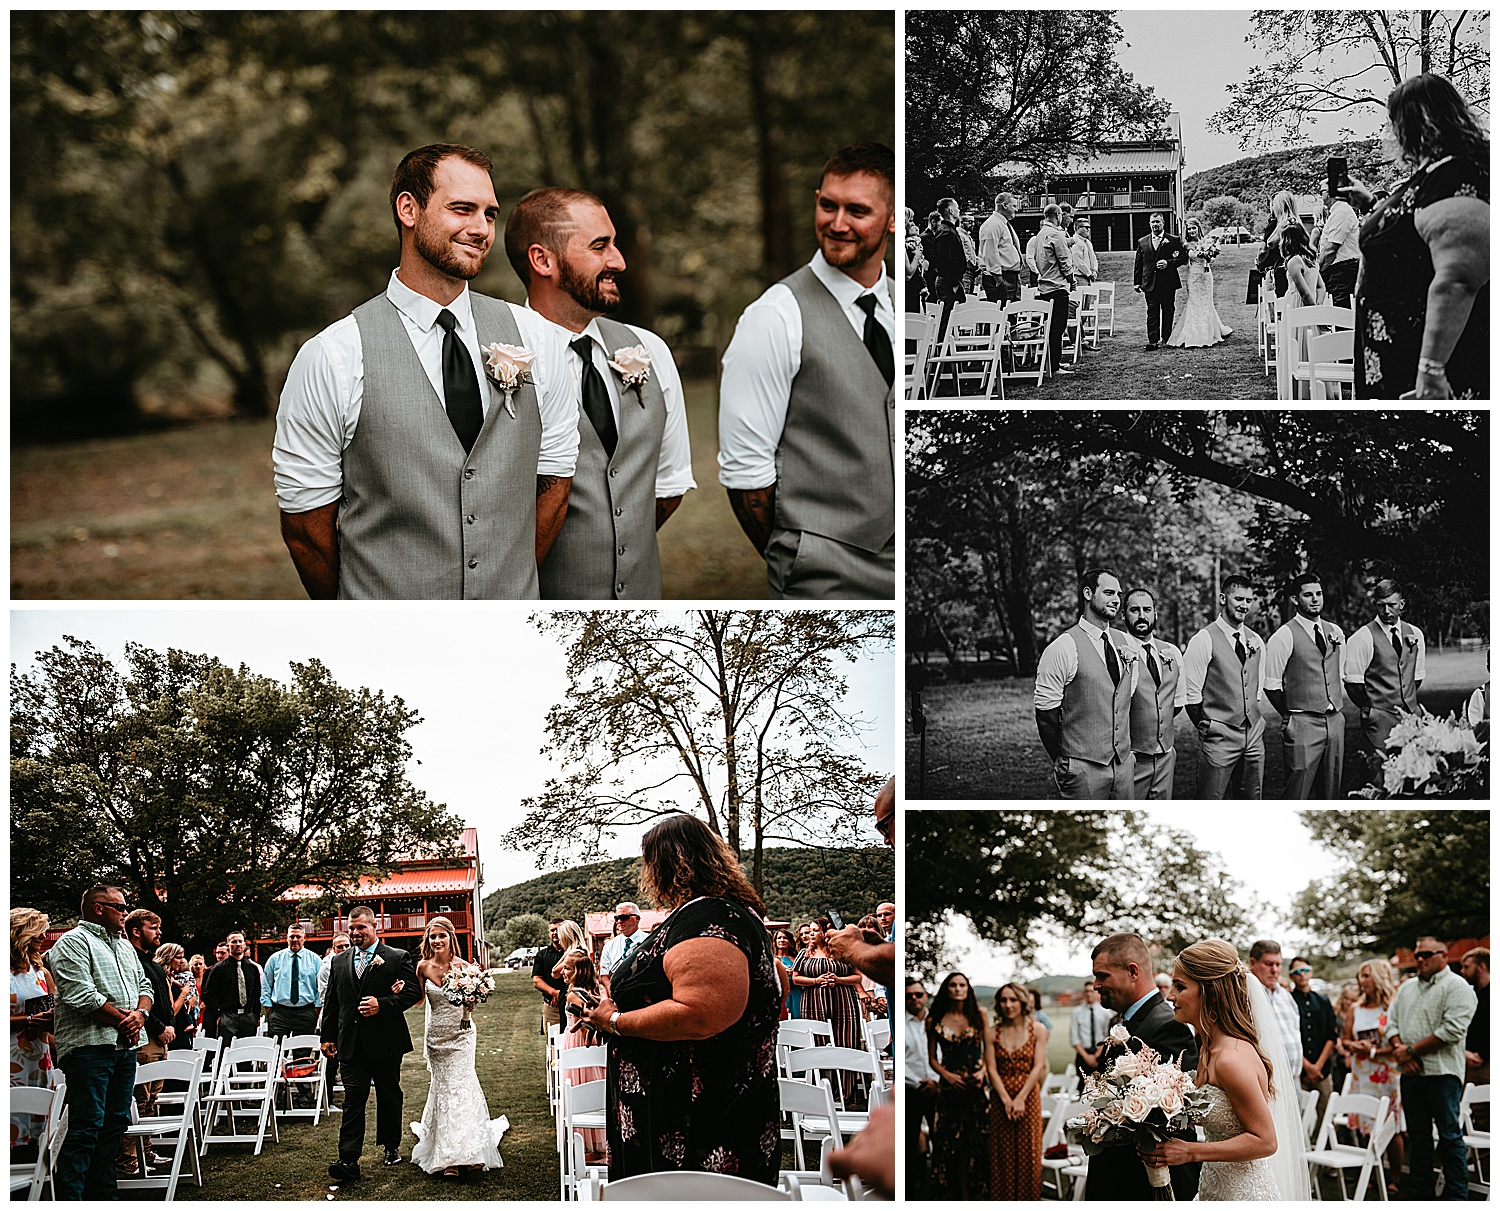 NEPA-Bloomgsburg-Wedding-Photographer-at-The-Barn-in-State-College-PA_0011.jpg